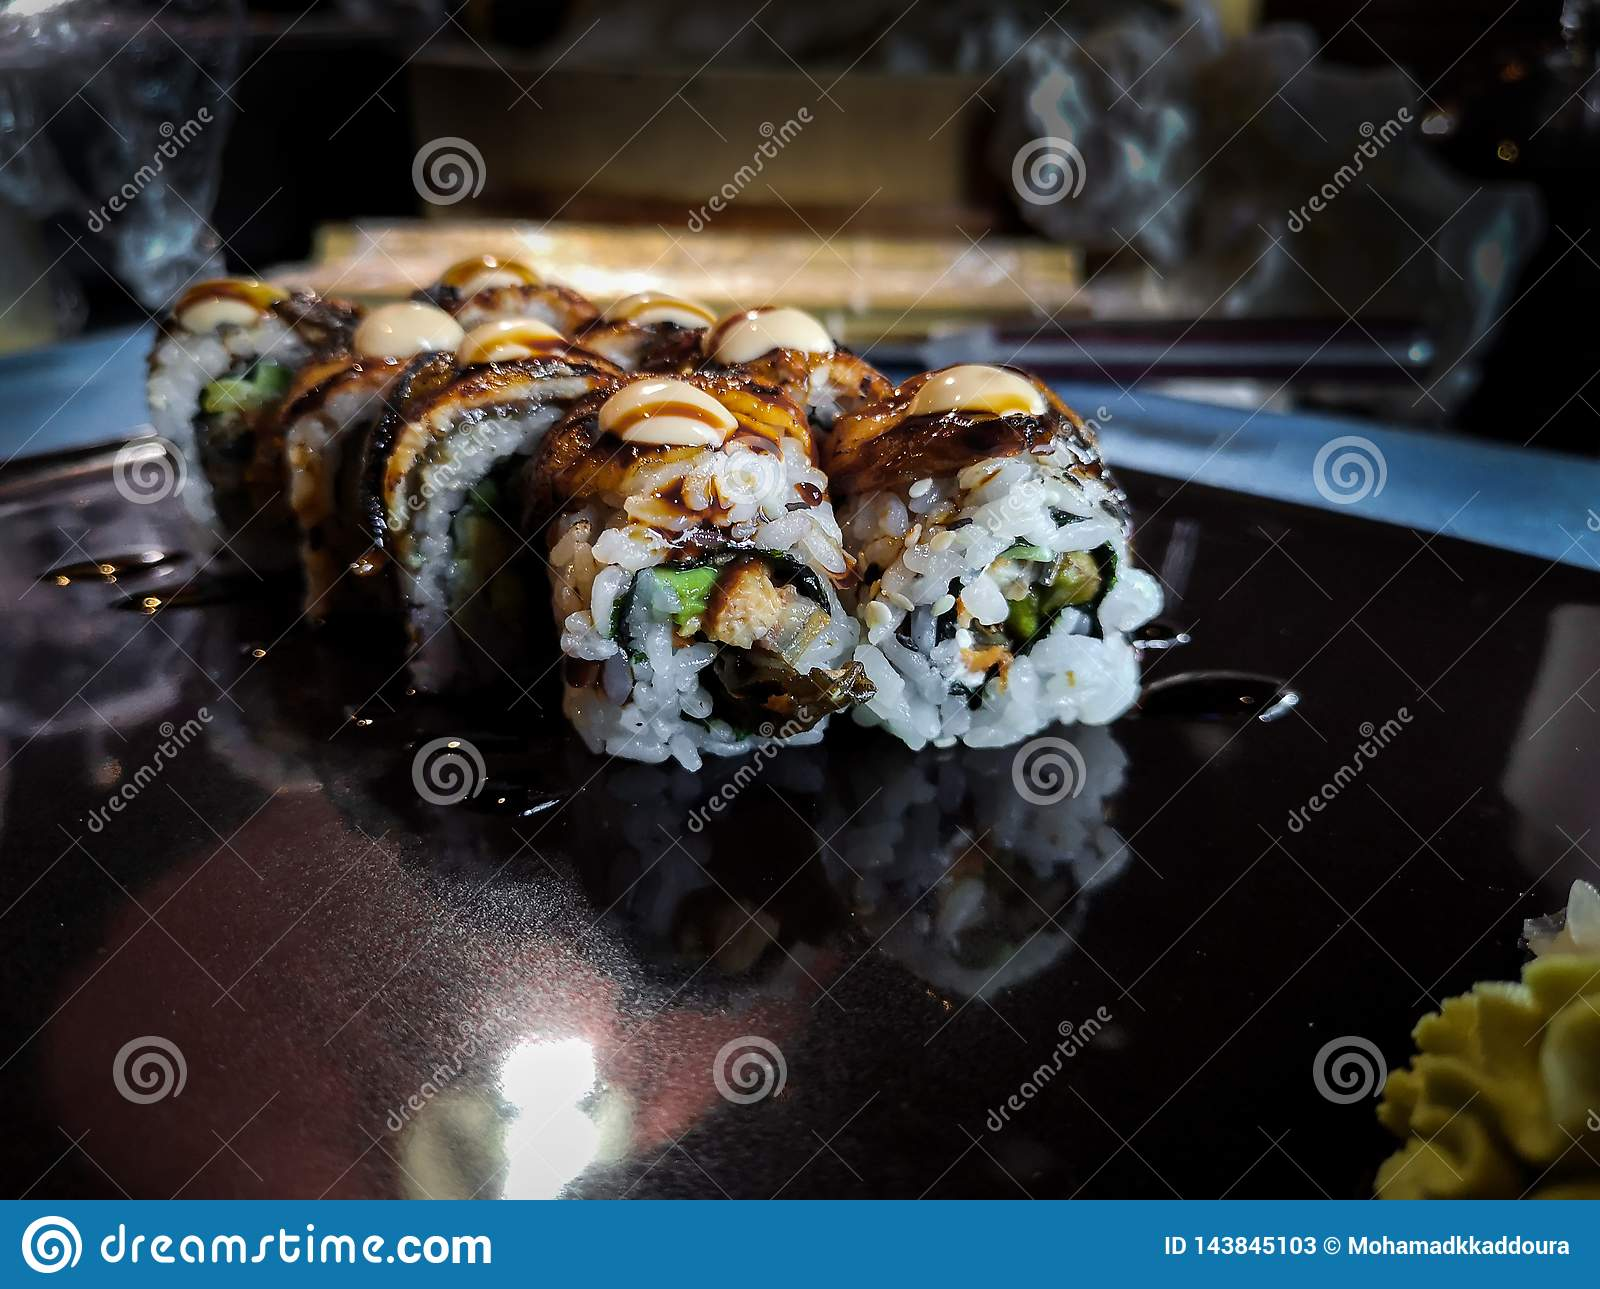 Sushi Roll With Grilled Salmon Prawn Avocado Cream Cheese Sushi Japanese Menu Stock Image Image Of Cucumber Fresh 143845103